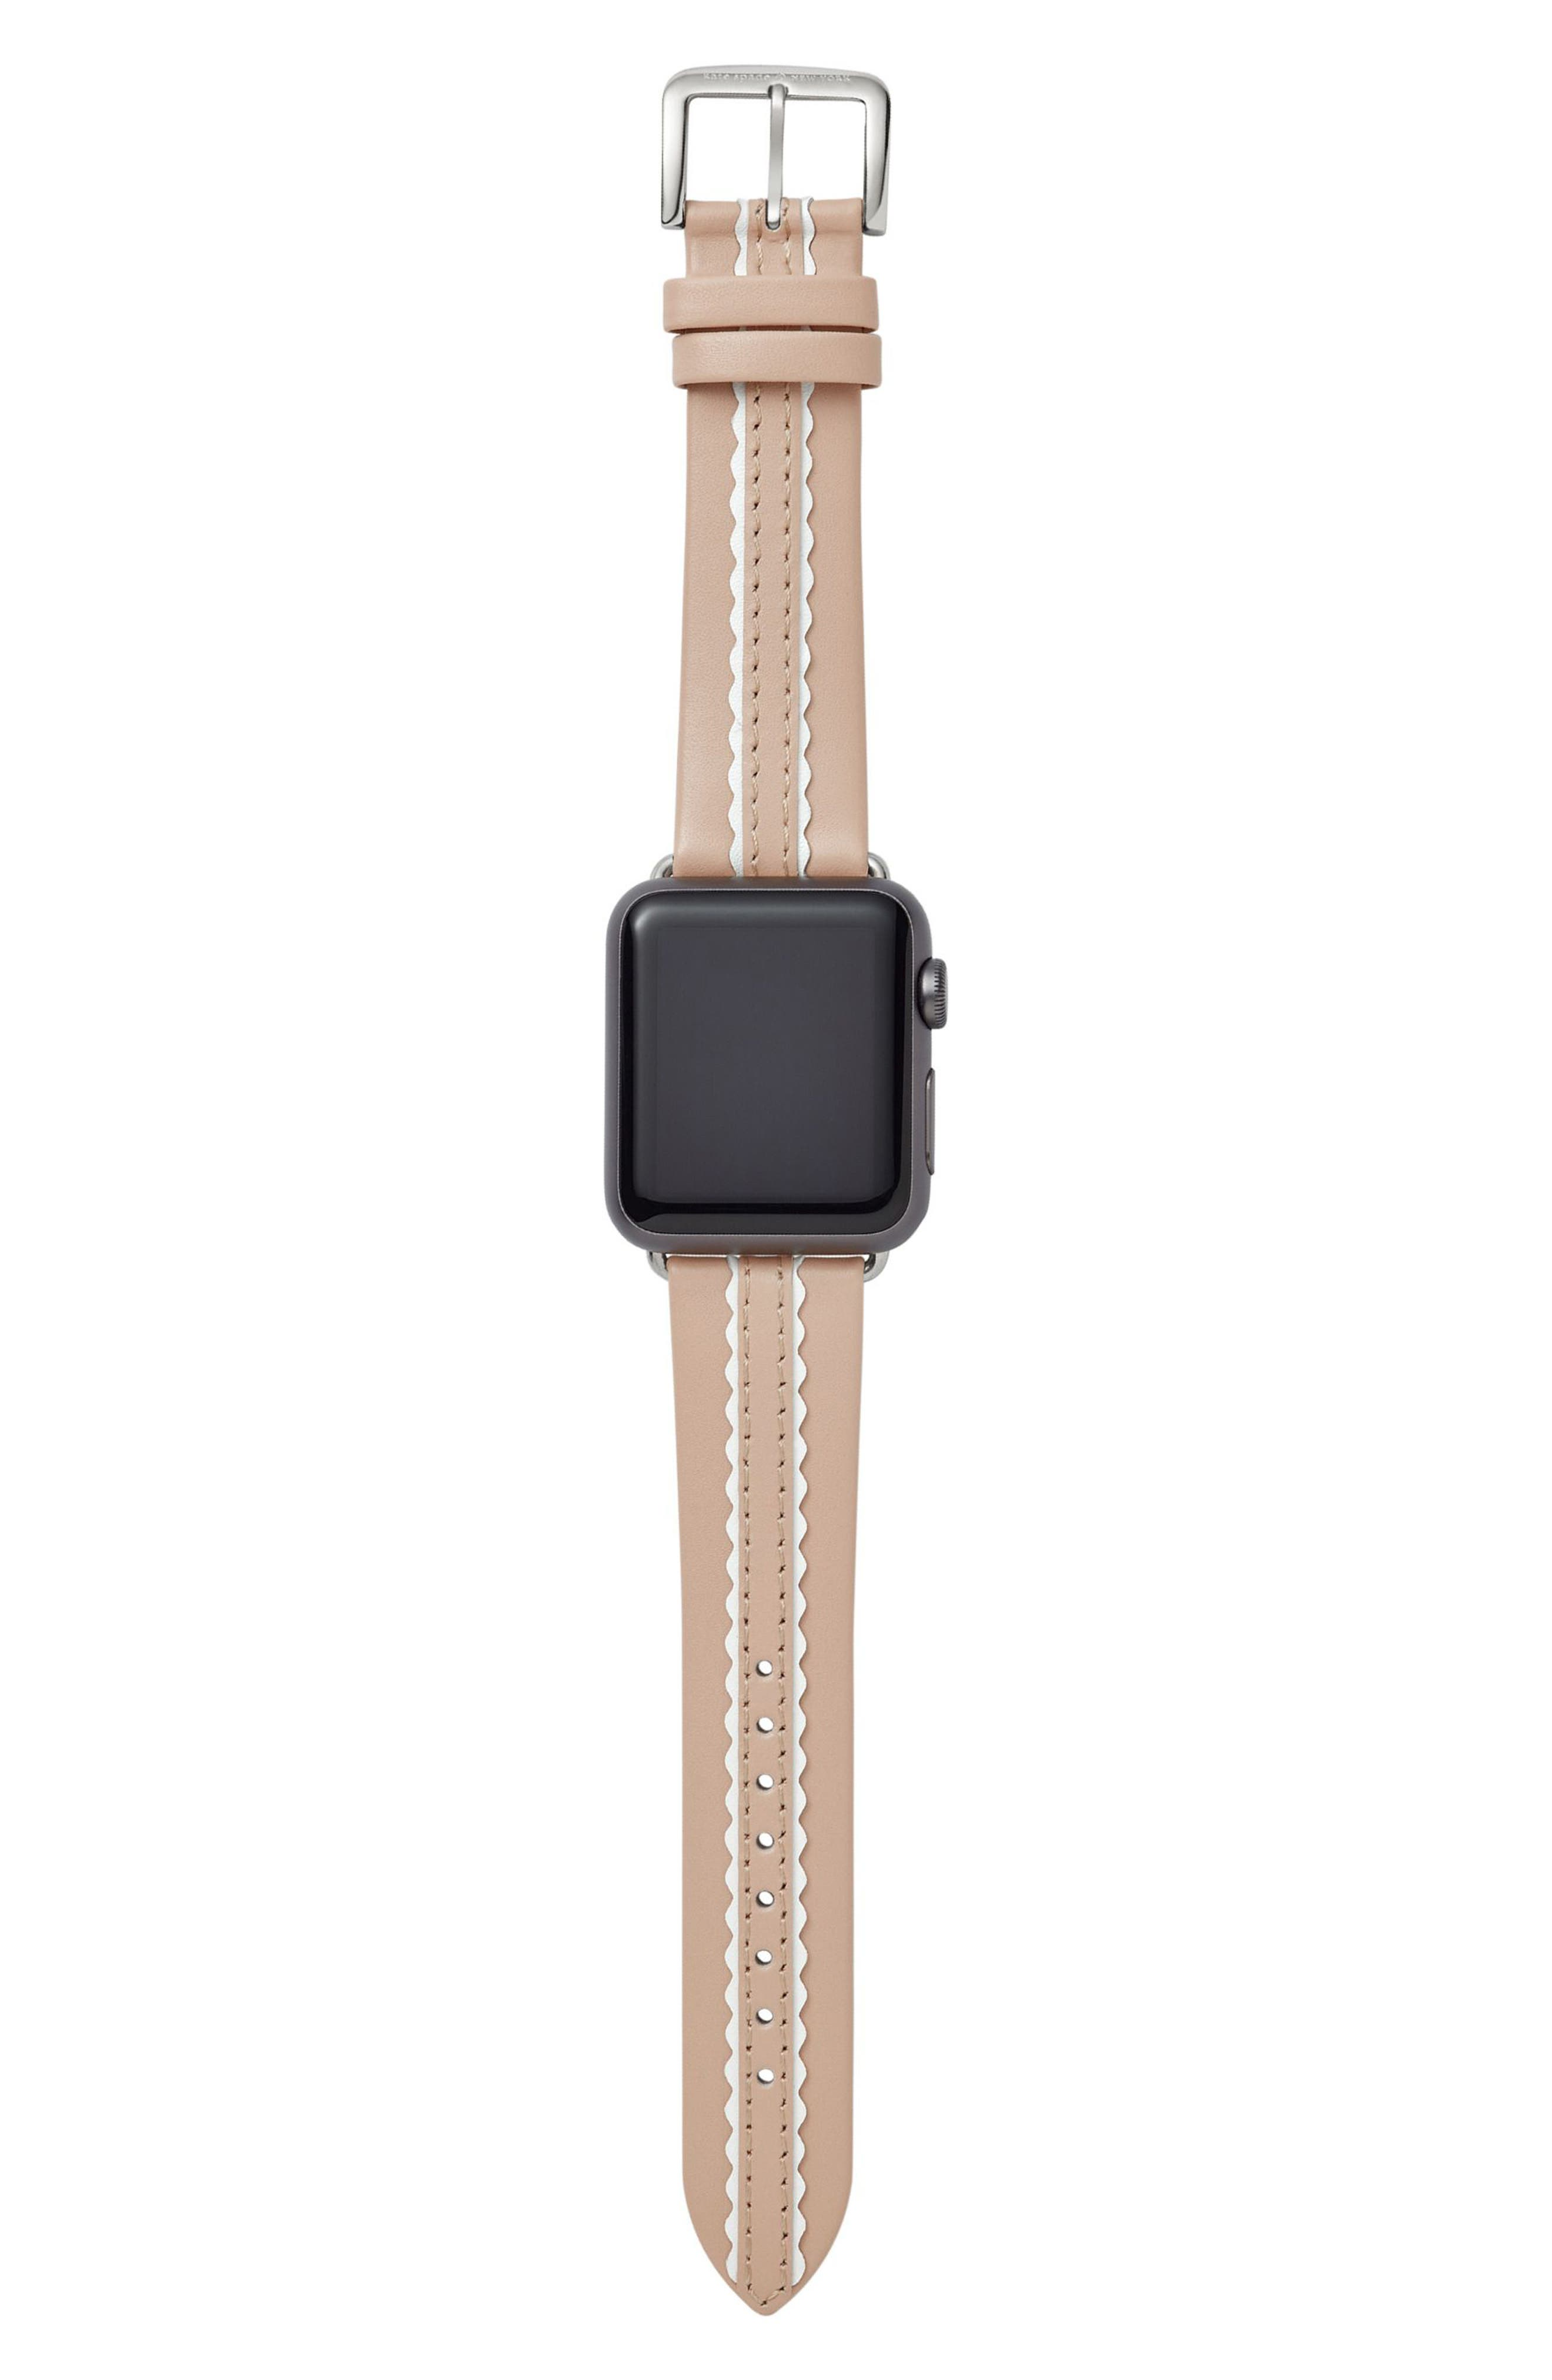 KATE SPADE NEW YORK, Apple Watch strap, 38mm, Alternate thumbnail 3, color, NUDE/ WHITE